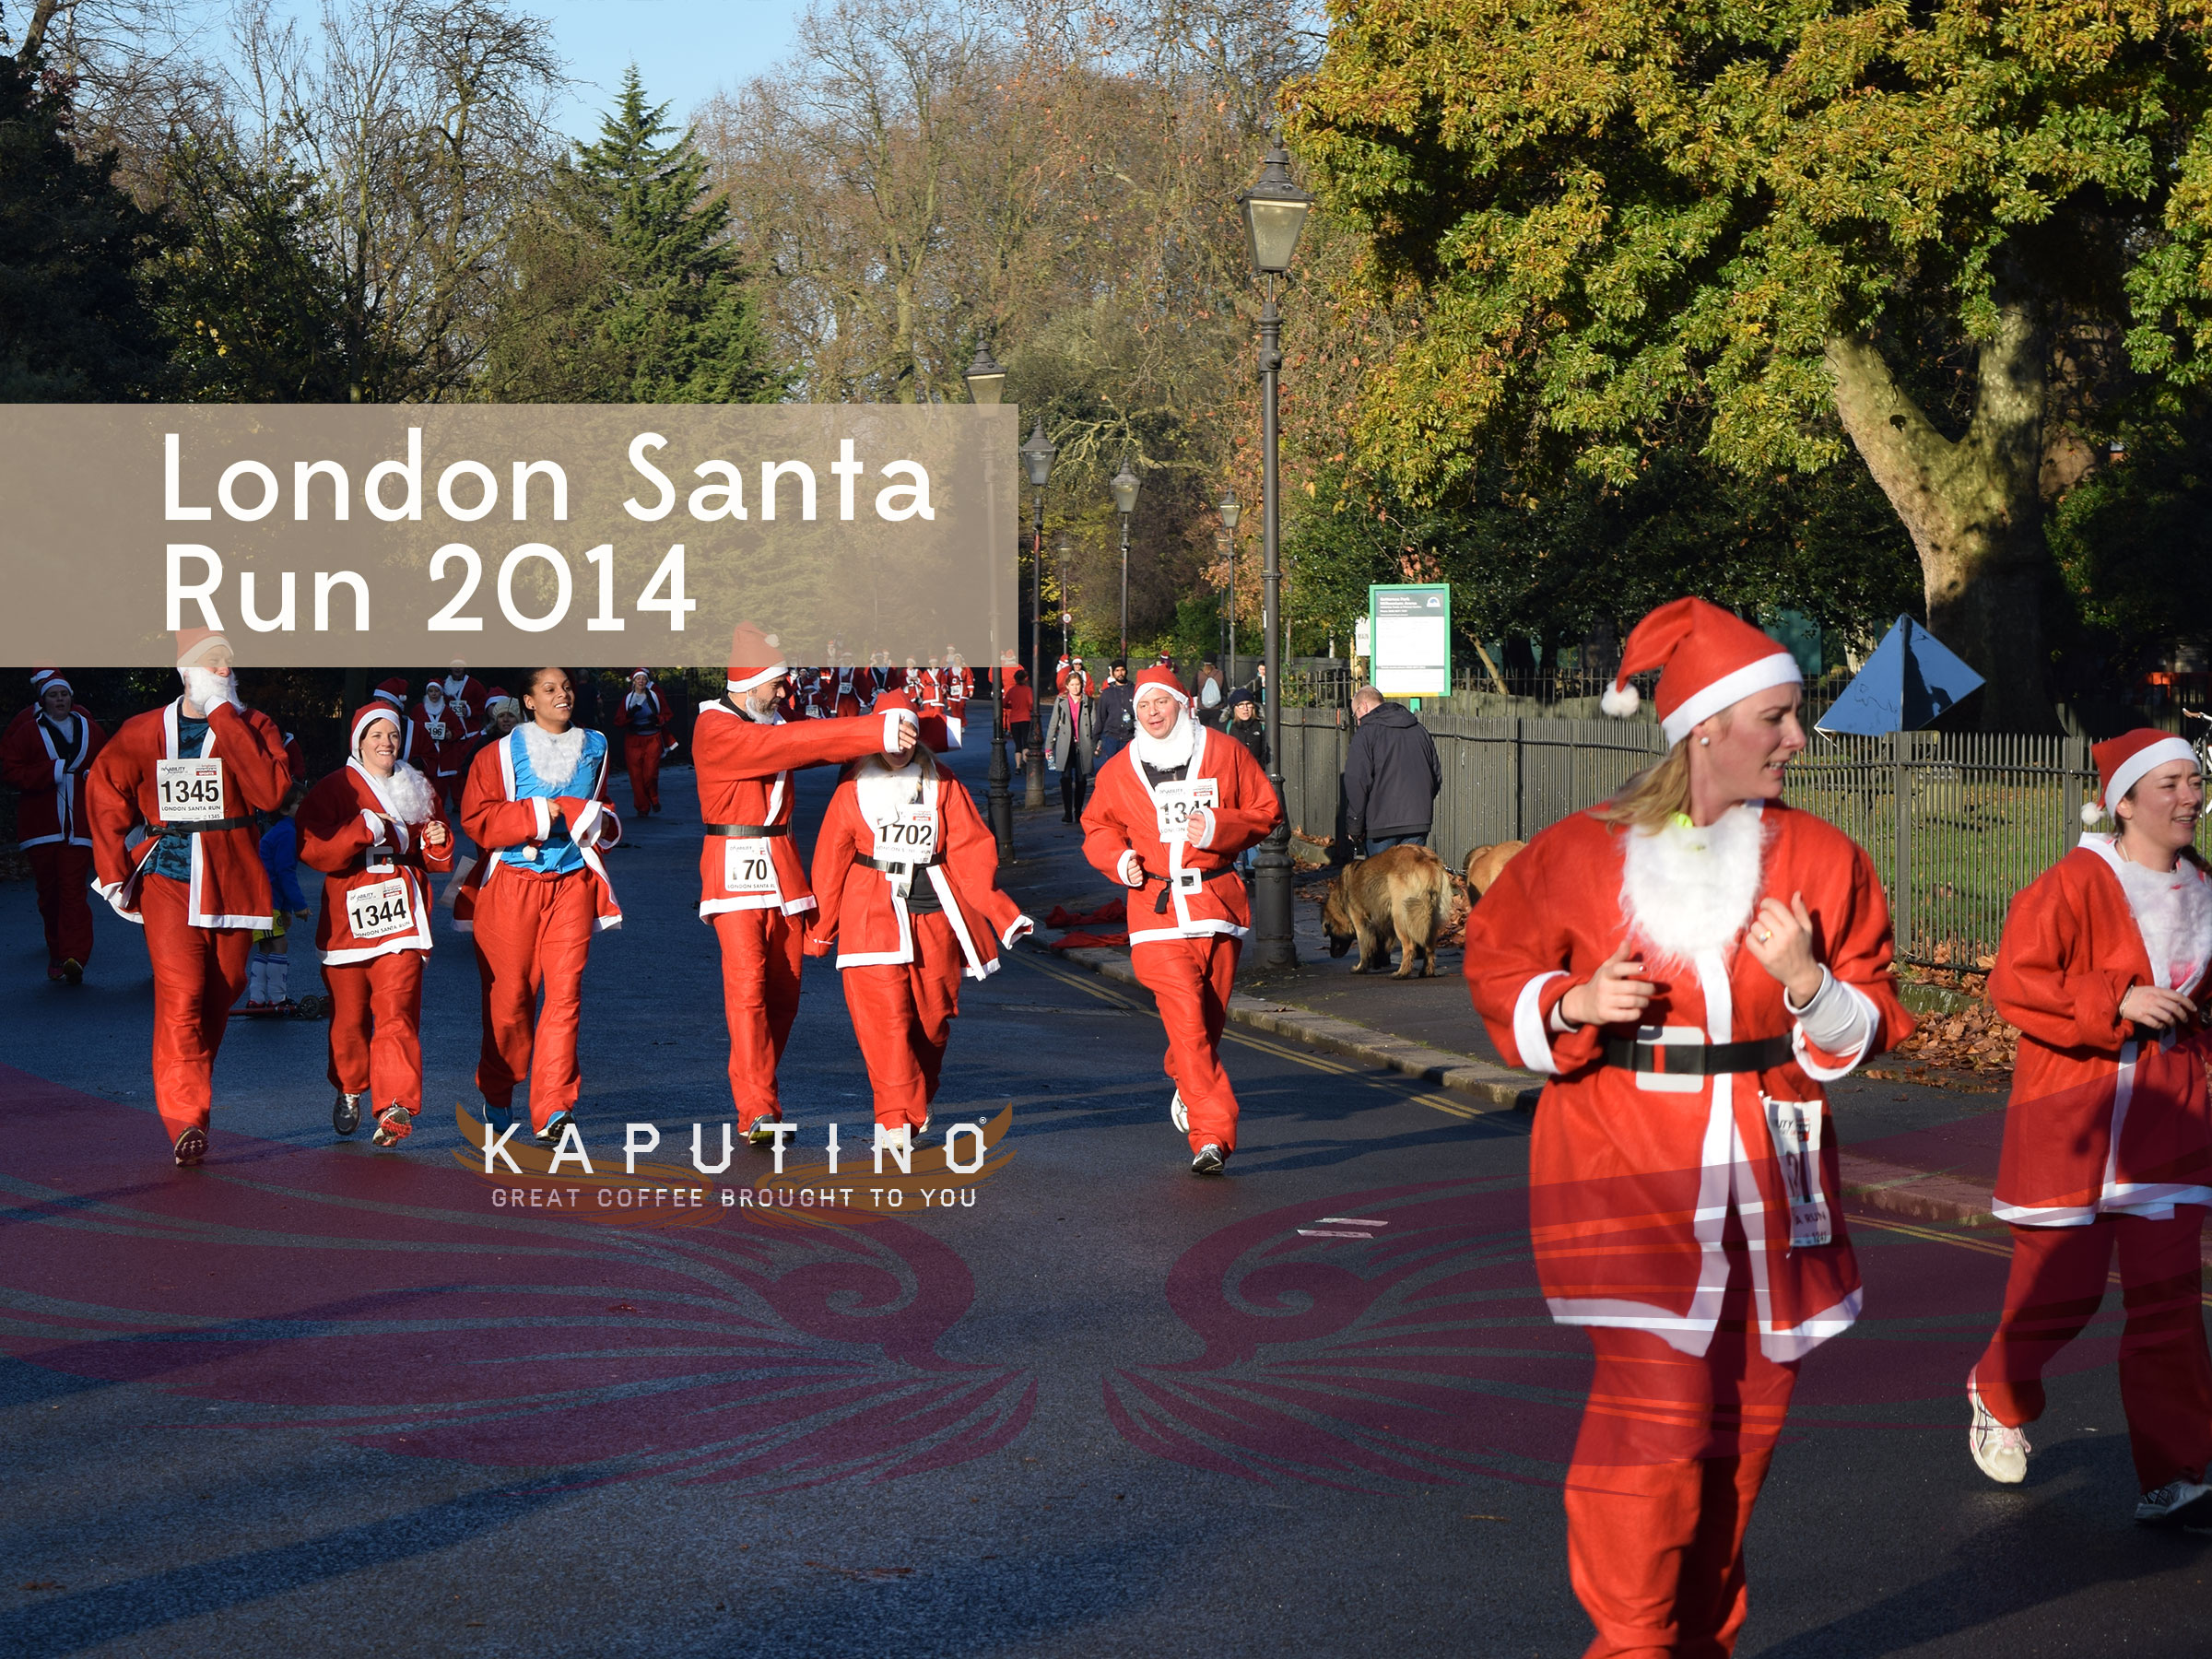 London-Santa-Run-2014,-Battersea-Park,-from-209-Events-with-the-kaputino-coffee-crepe-van